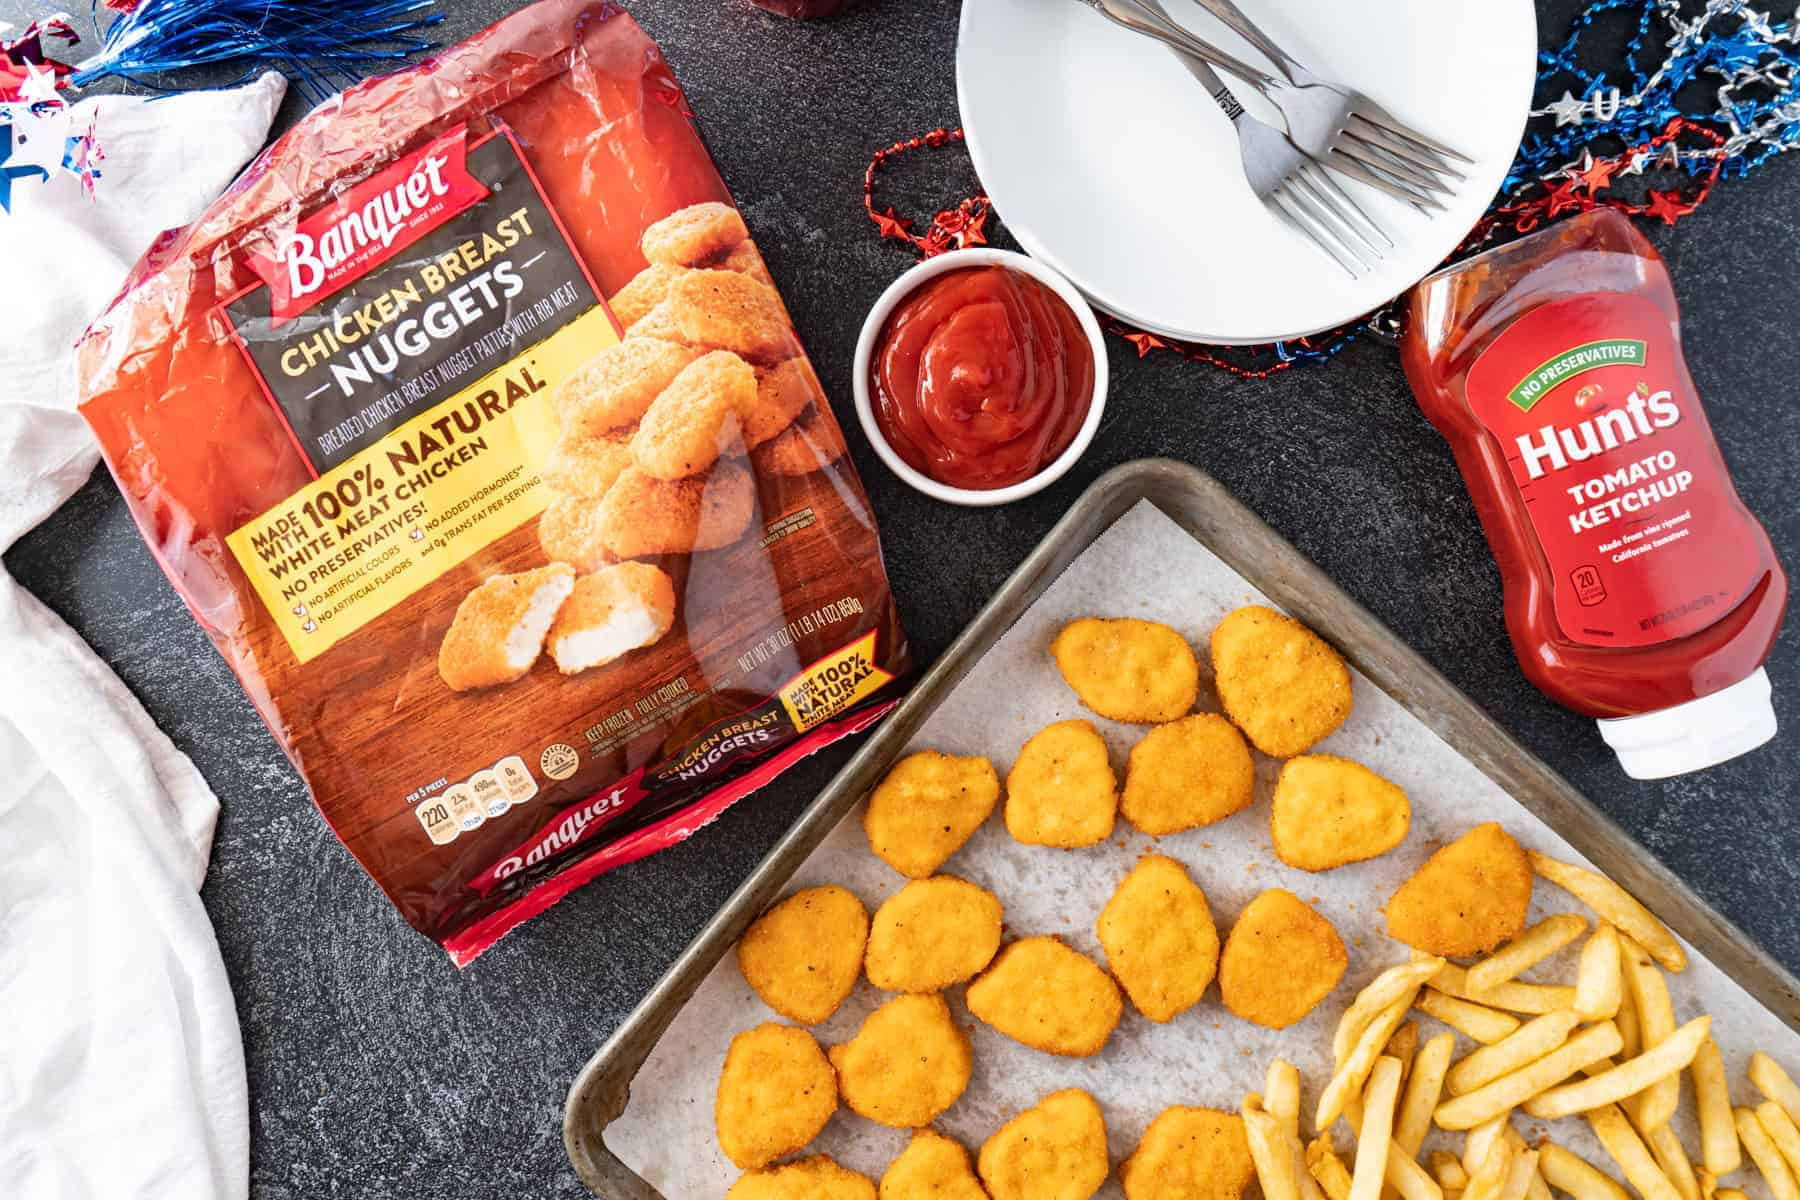 chicken nuggets on tray with ketchup bottle and chicken nugget bag nearby